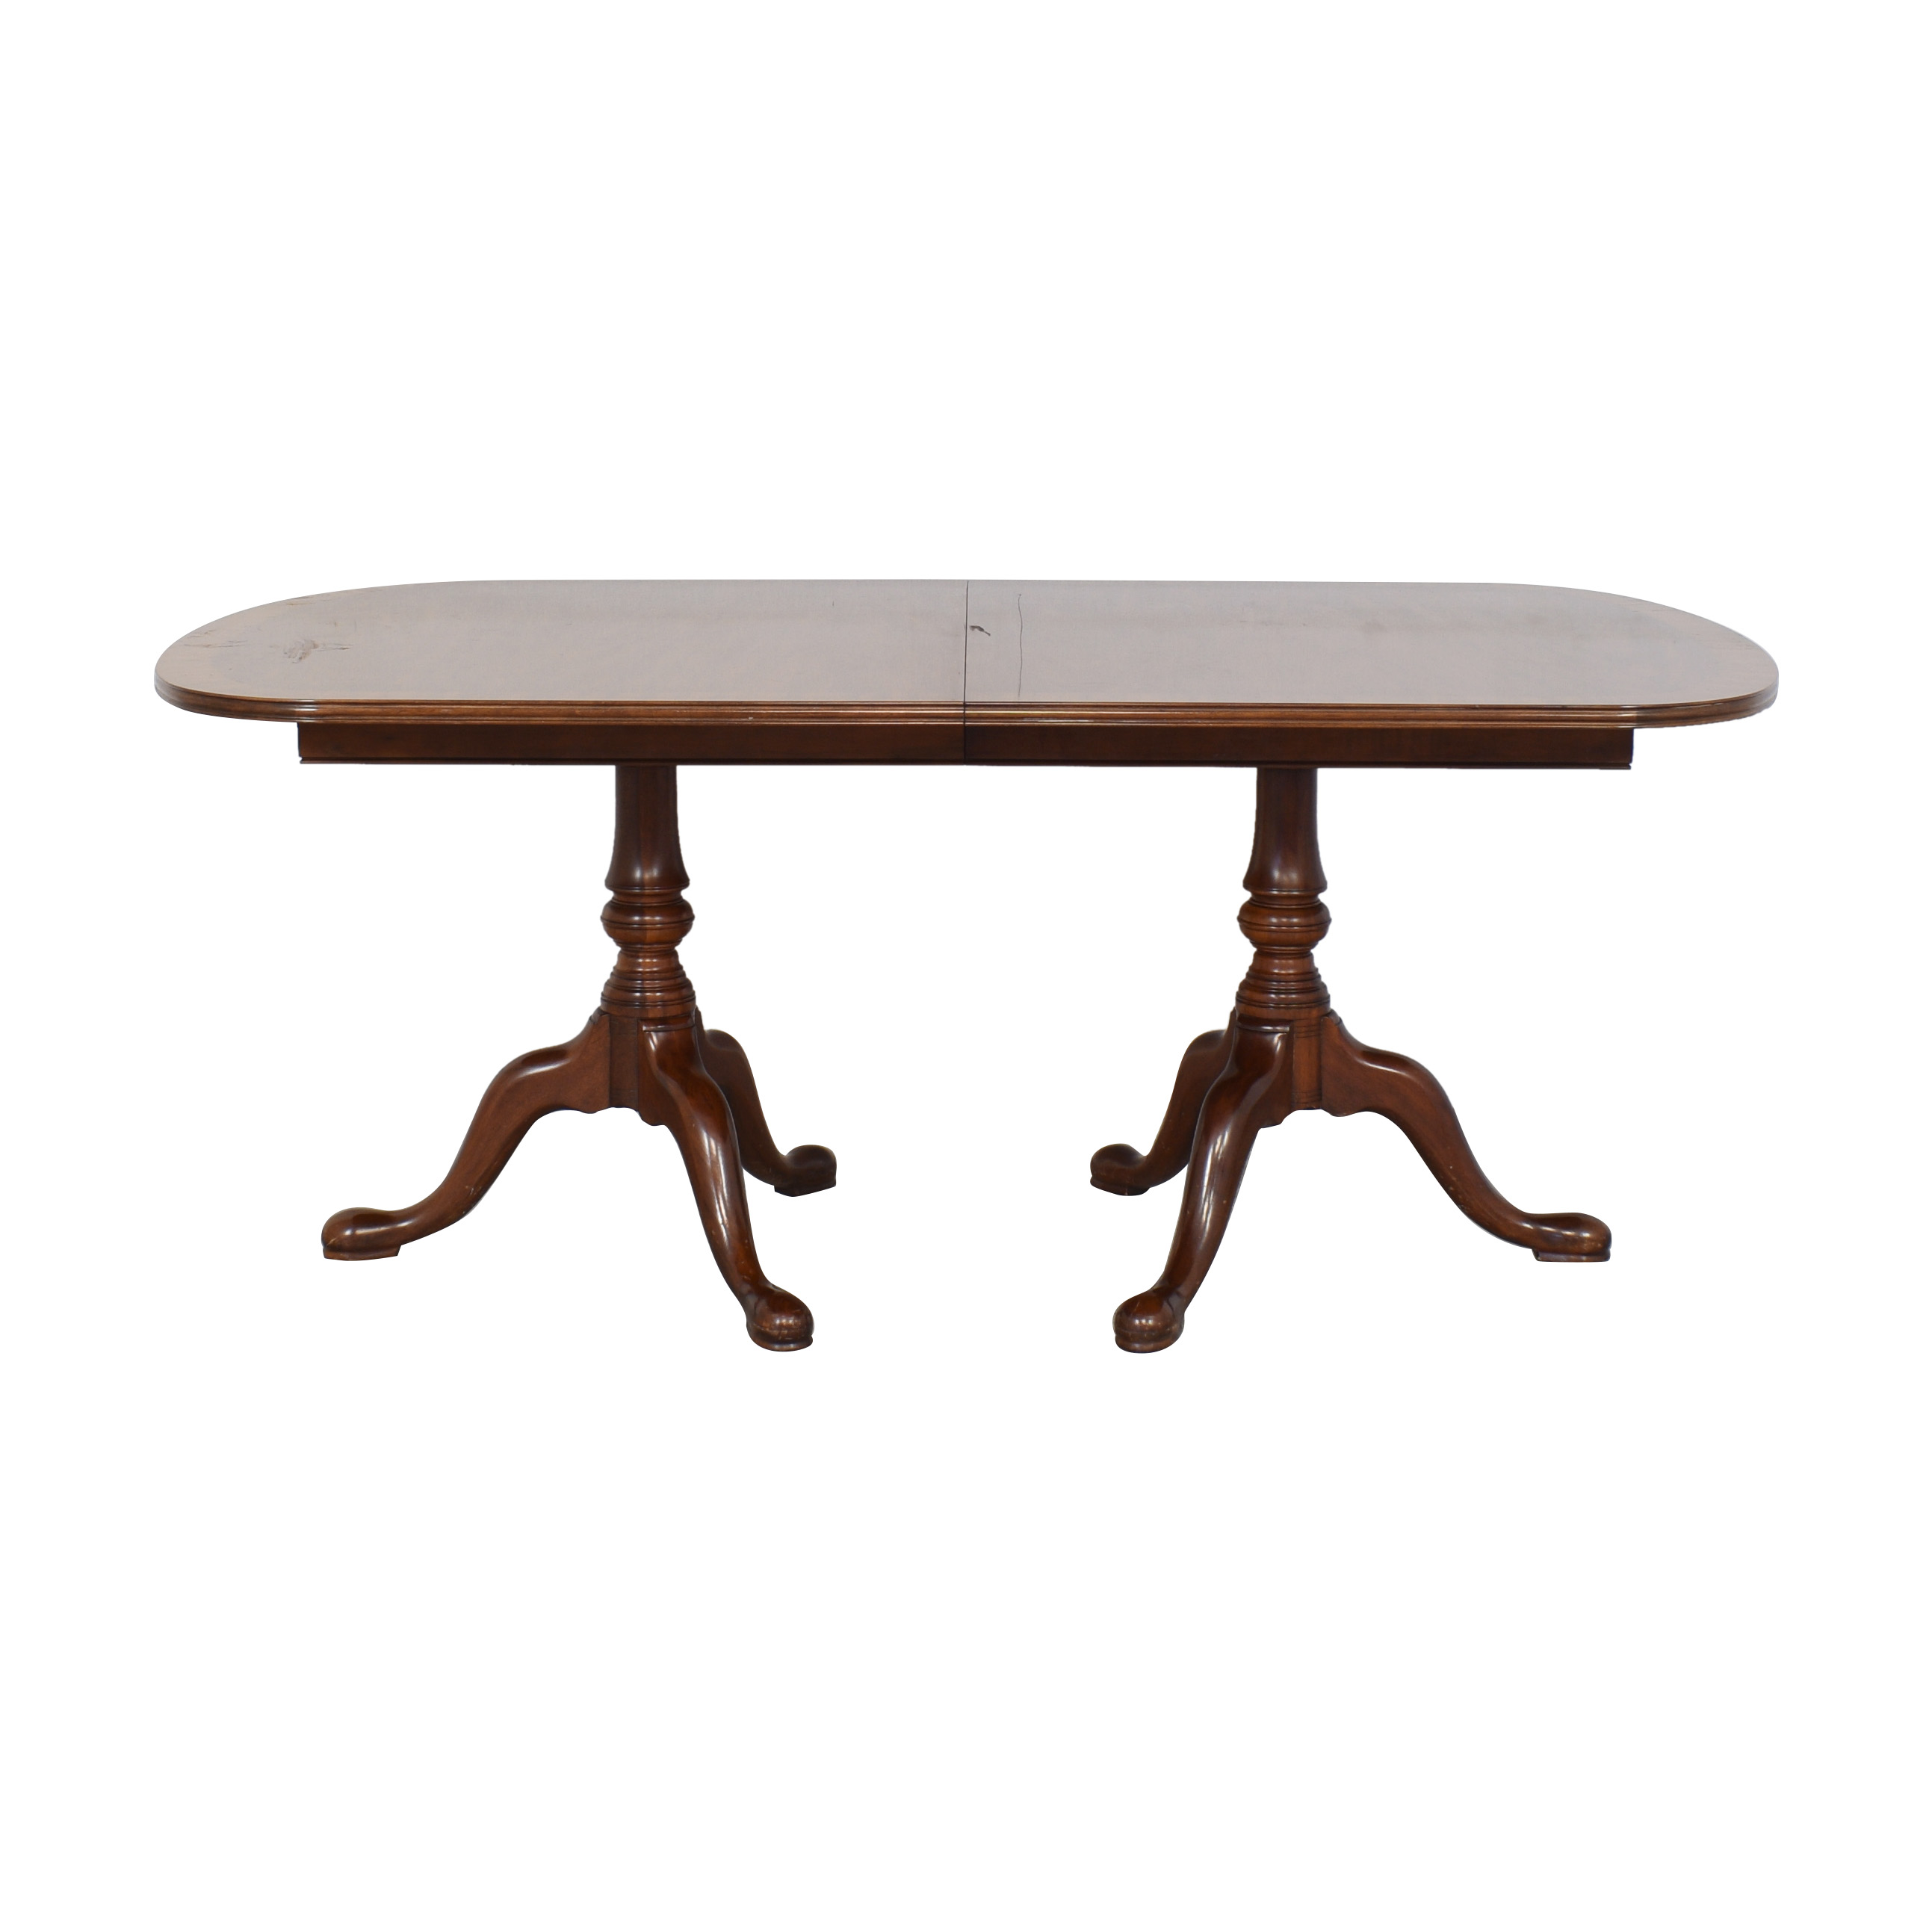 Henkel Harris Henkel harris Double Pedestal Banded Mahogany Dining Table ct